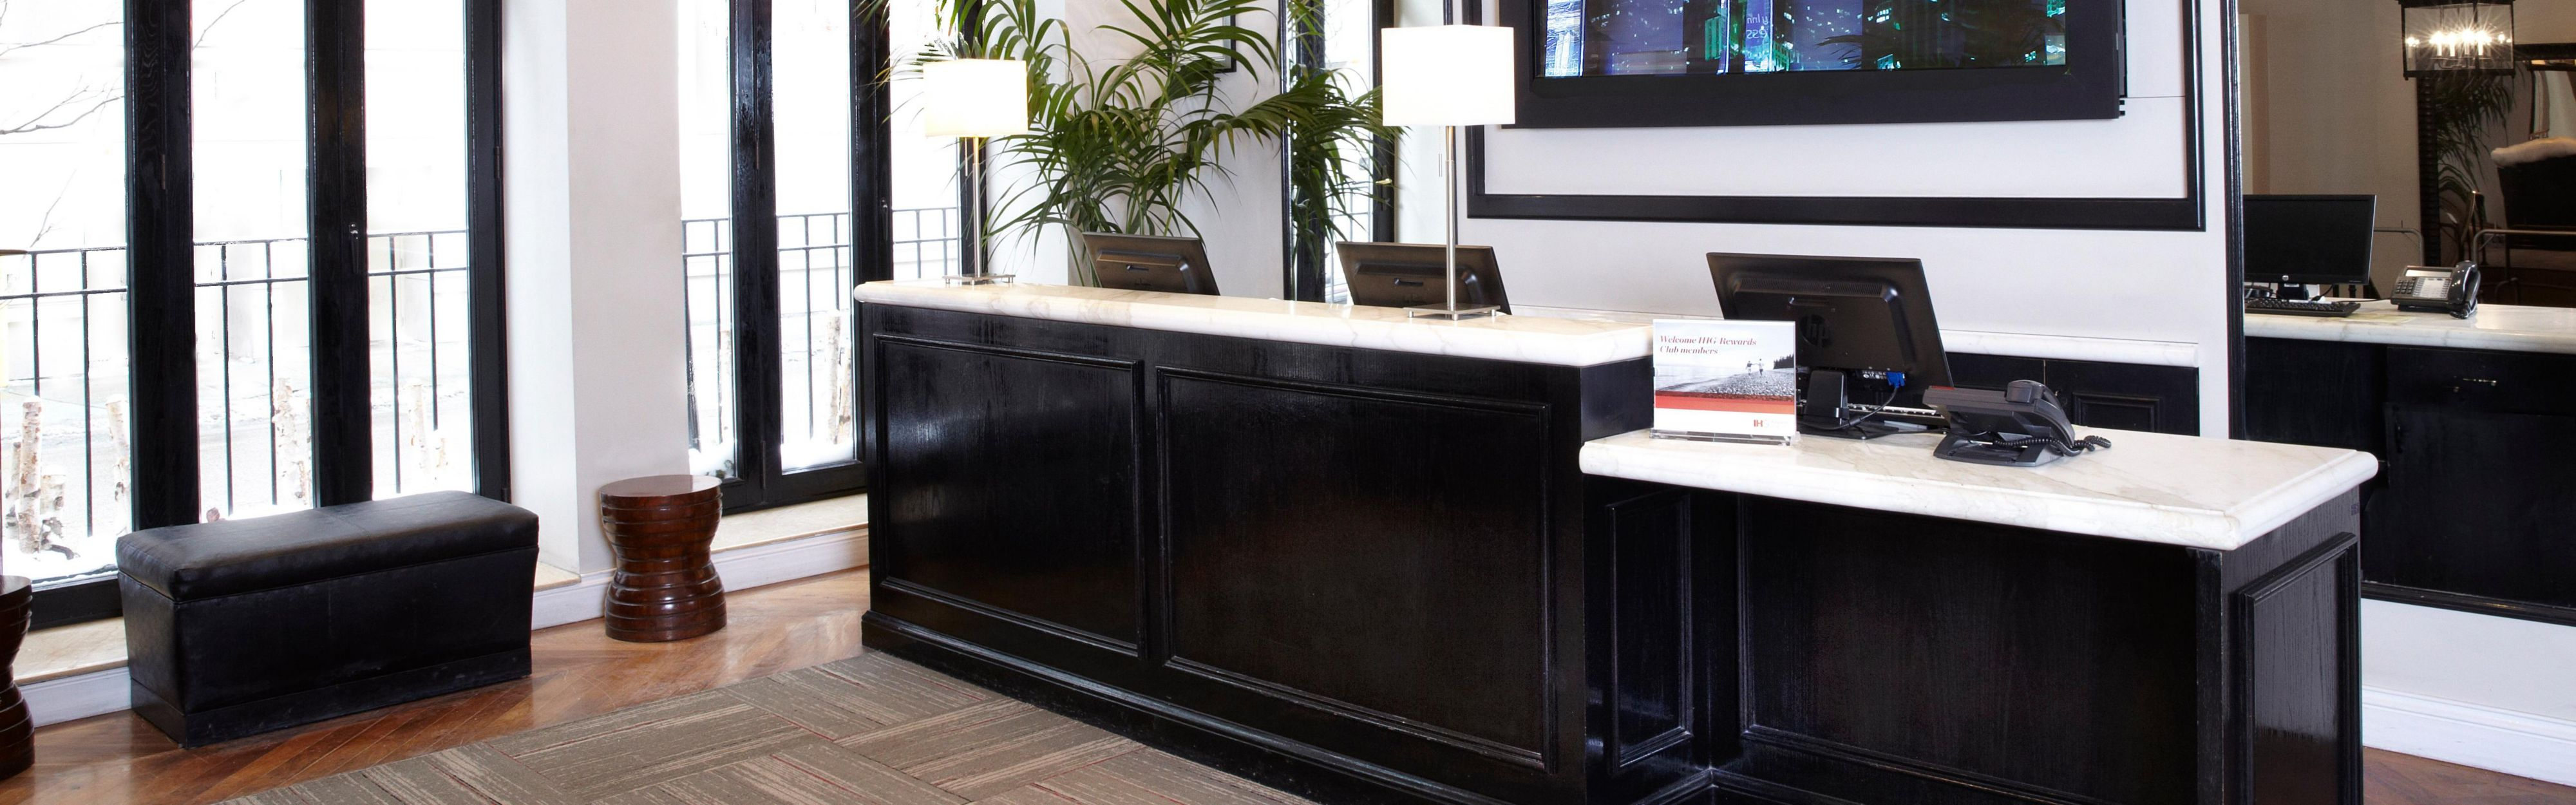 Holiday Inn Express Chicago - Magnificent Mile image 0